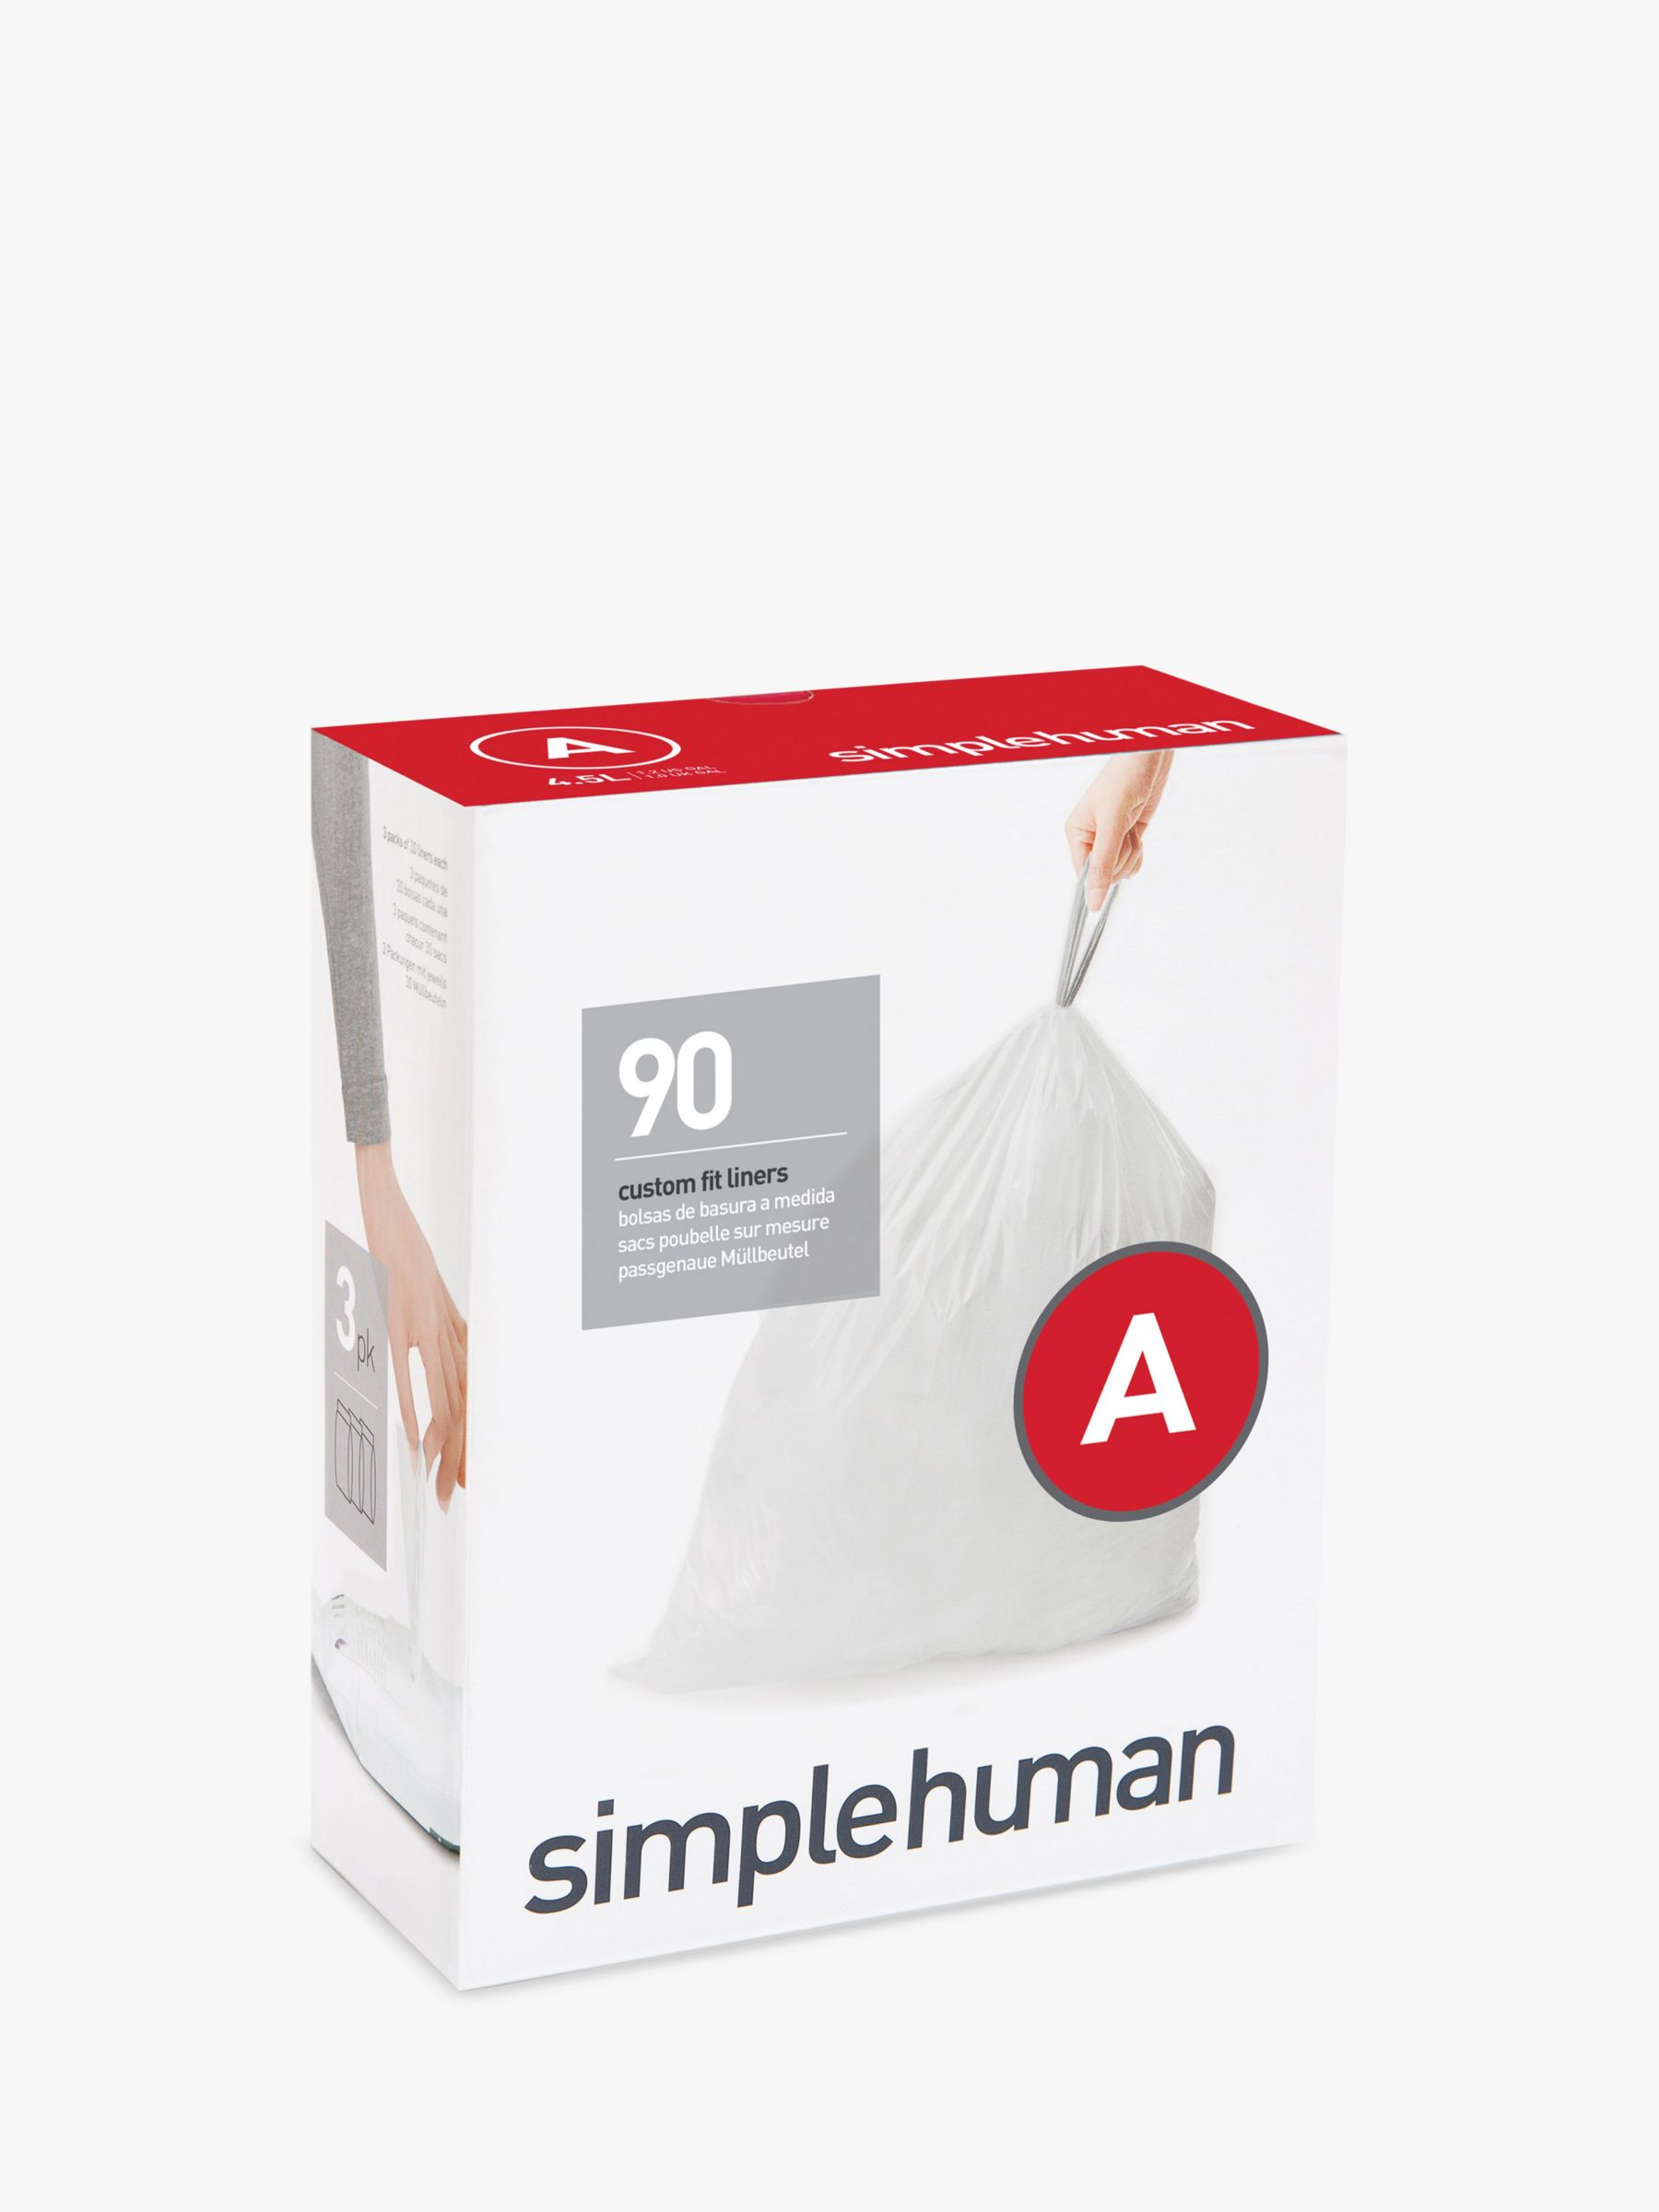 Simplehuman simplehuman Bin Liners, Size A, Three Packs of 30